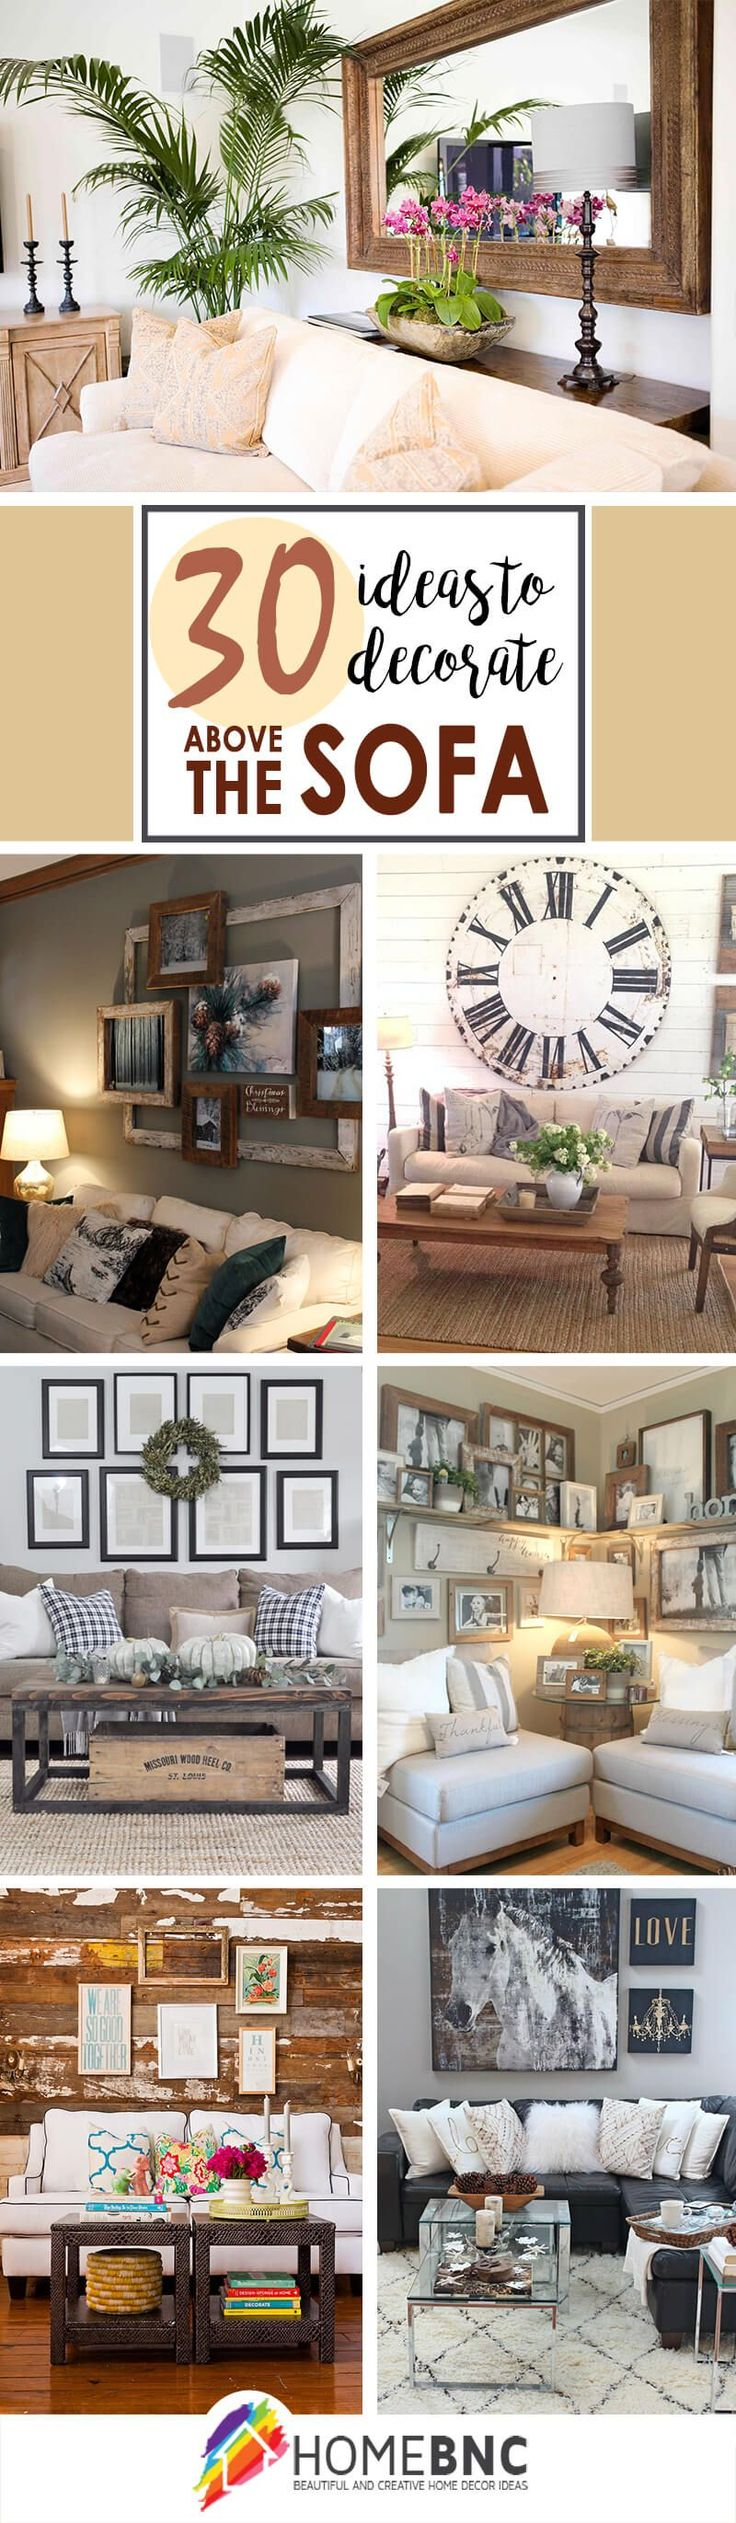 Best 25 above couch decor ideas on pinterest mirror Over the sofa wall decor ideas